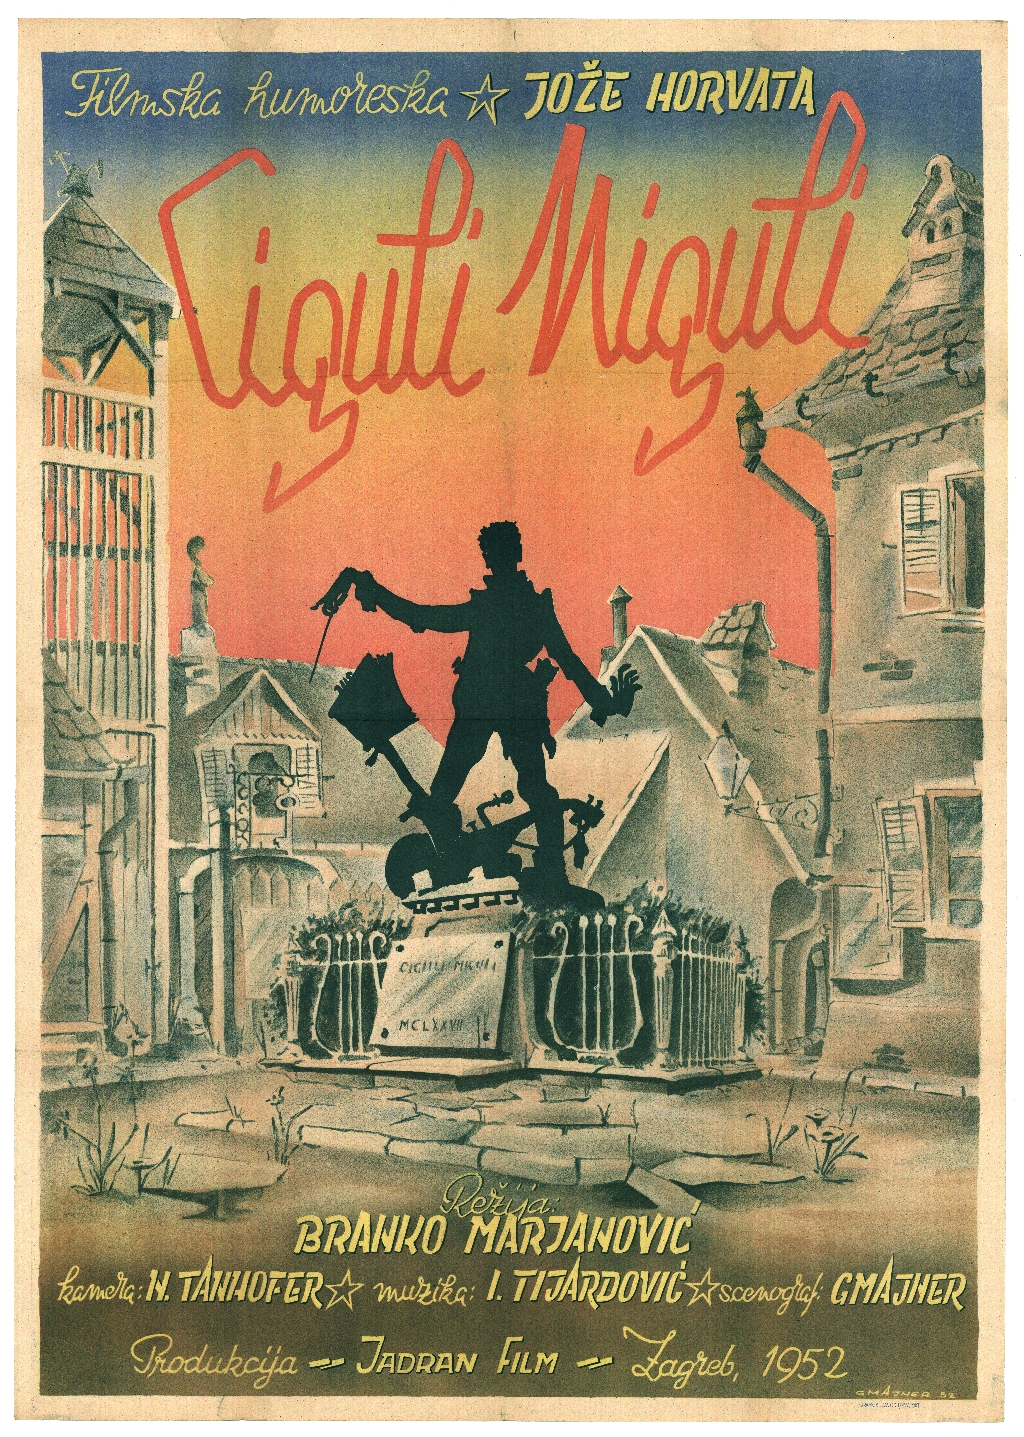 Poster for the movie Ciguli miguli from 1952, the first banned film in socialist Croatia. The film, directed by Branko Marjanović and written by Joža Horvat, was meant to be the first satirical production in post-World War II Yugoslav cinema. It criticised Soviet-type bureaucracies. It was not granted a permit for public screening until 30 April 1977. It was broadcast for the first time on national television in 1989.